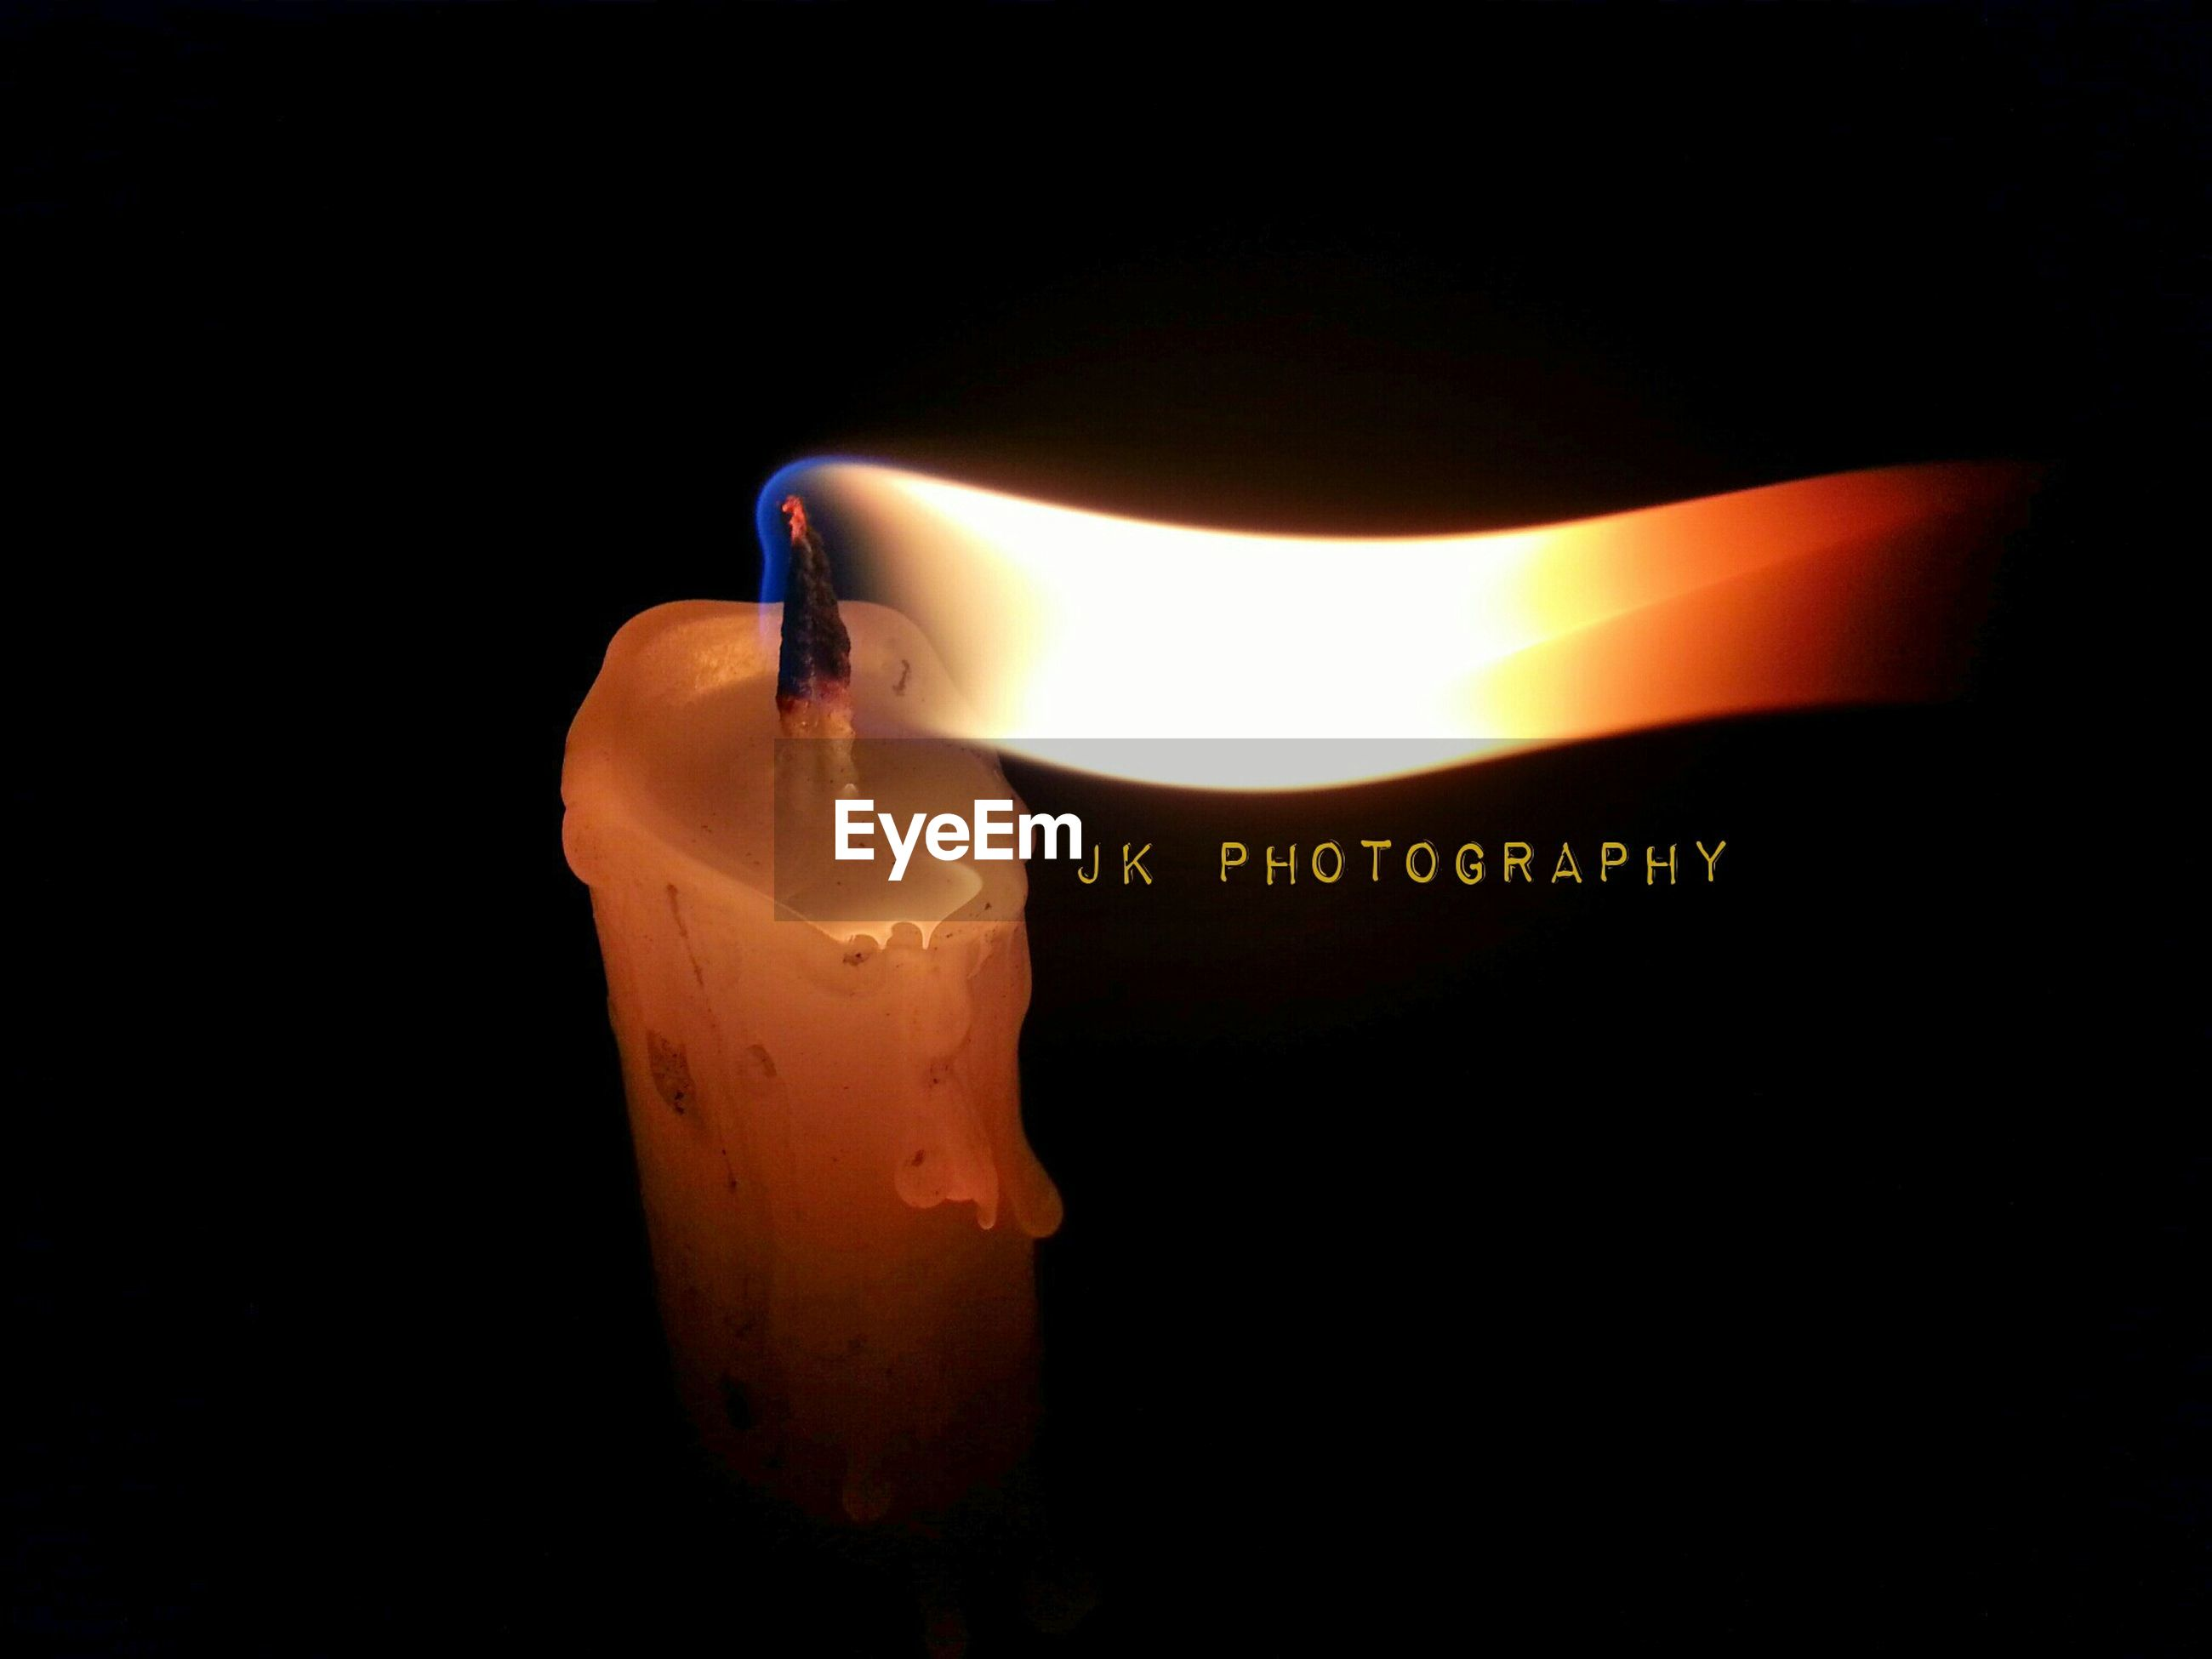 indoors, black background, studio shot, close-up, dark, still life, single object, copy space, part of, candle, darkroom, illuminated, lit, person, one person, burning, light - natural phenomenon, table, fashion